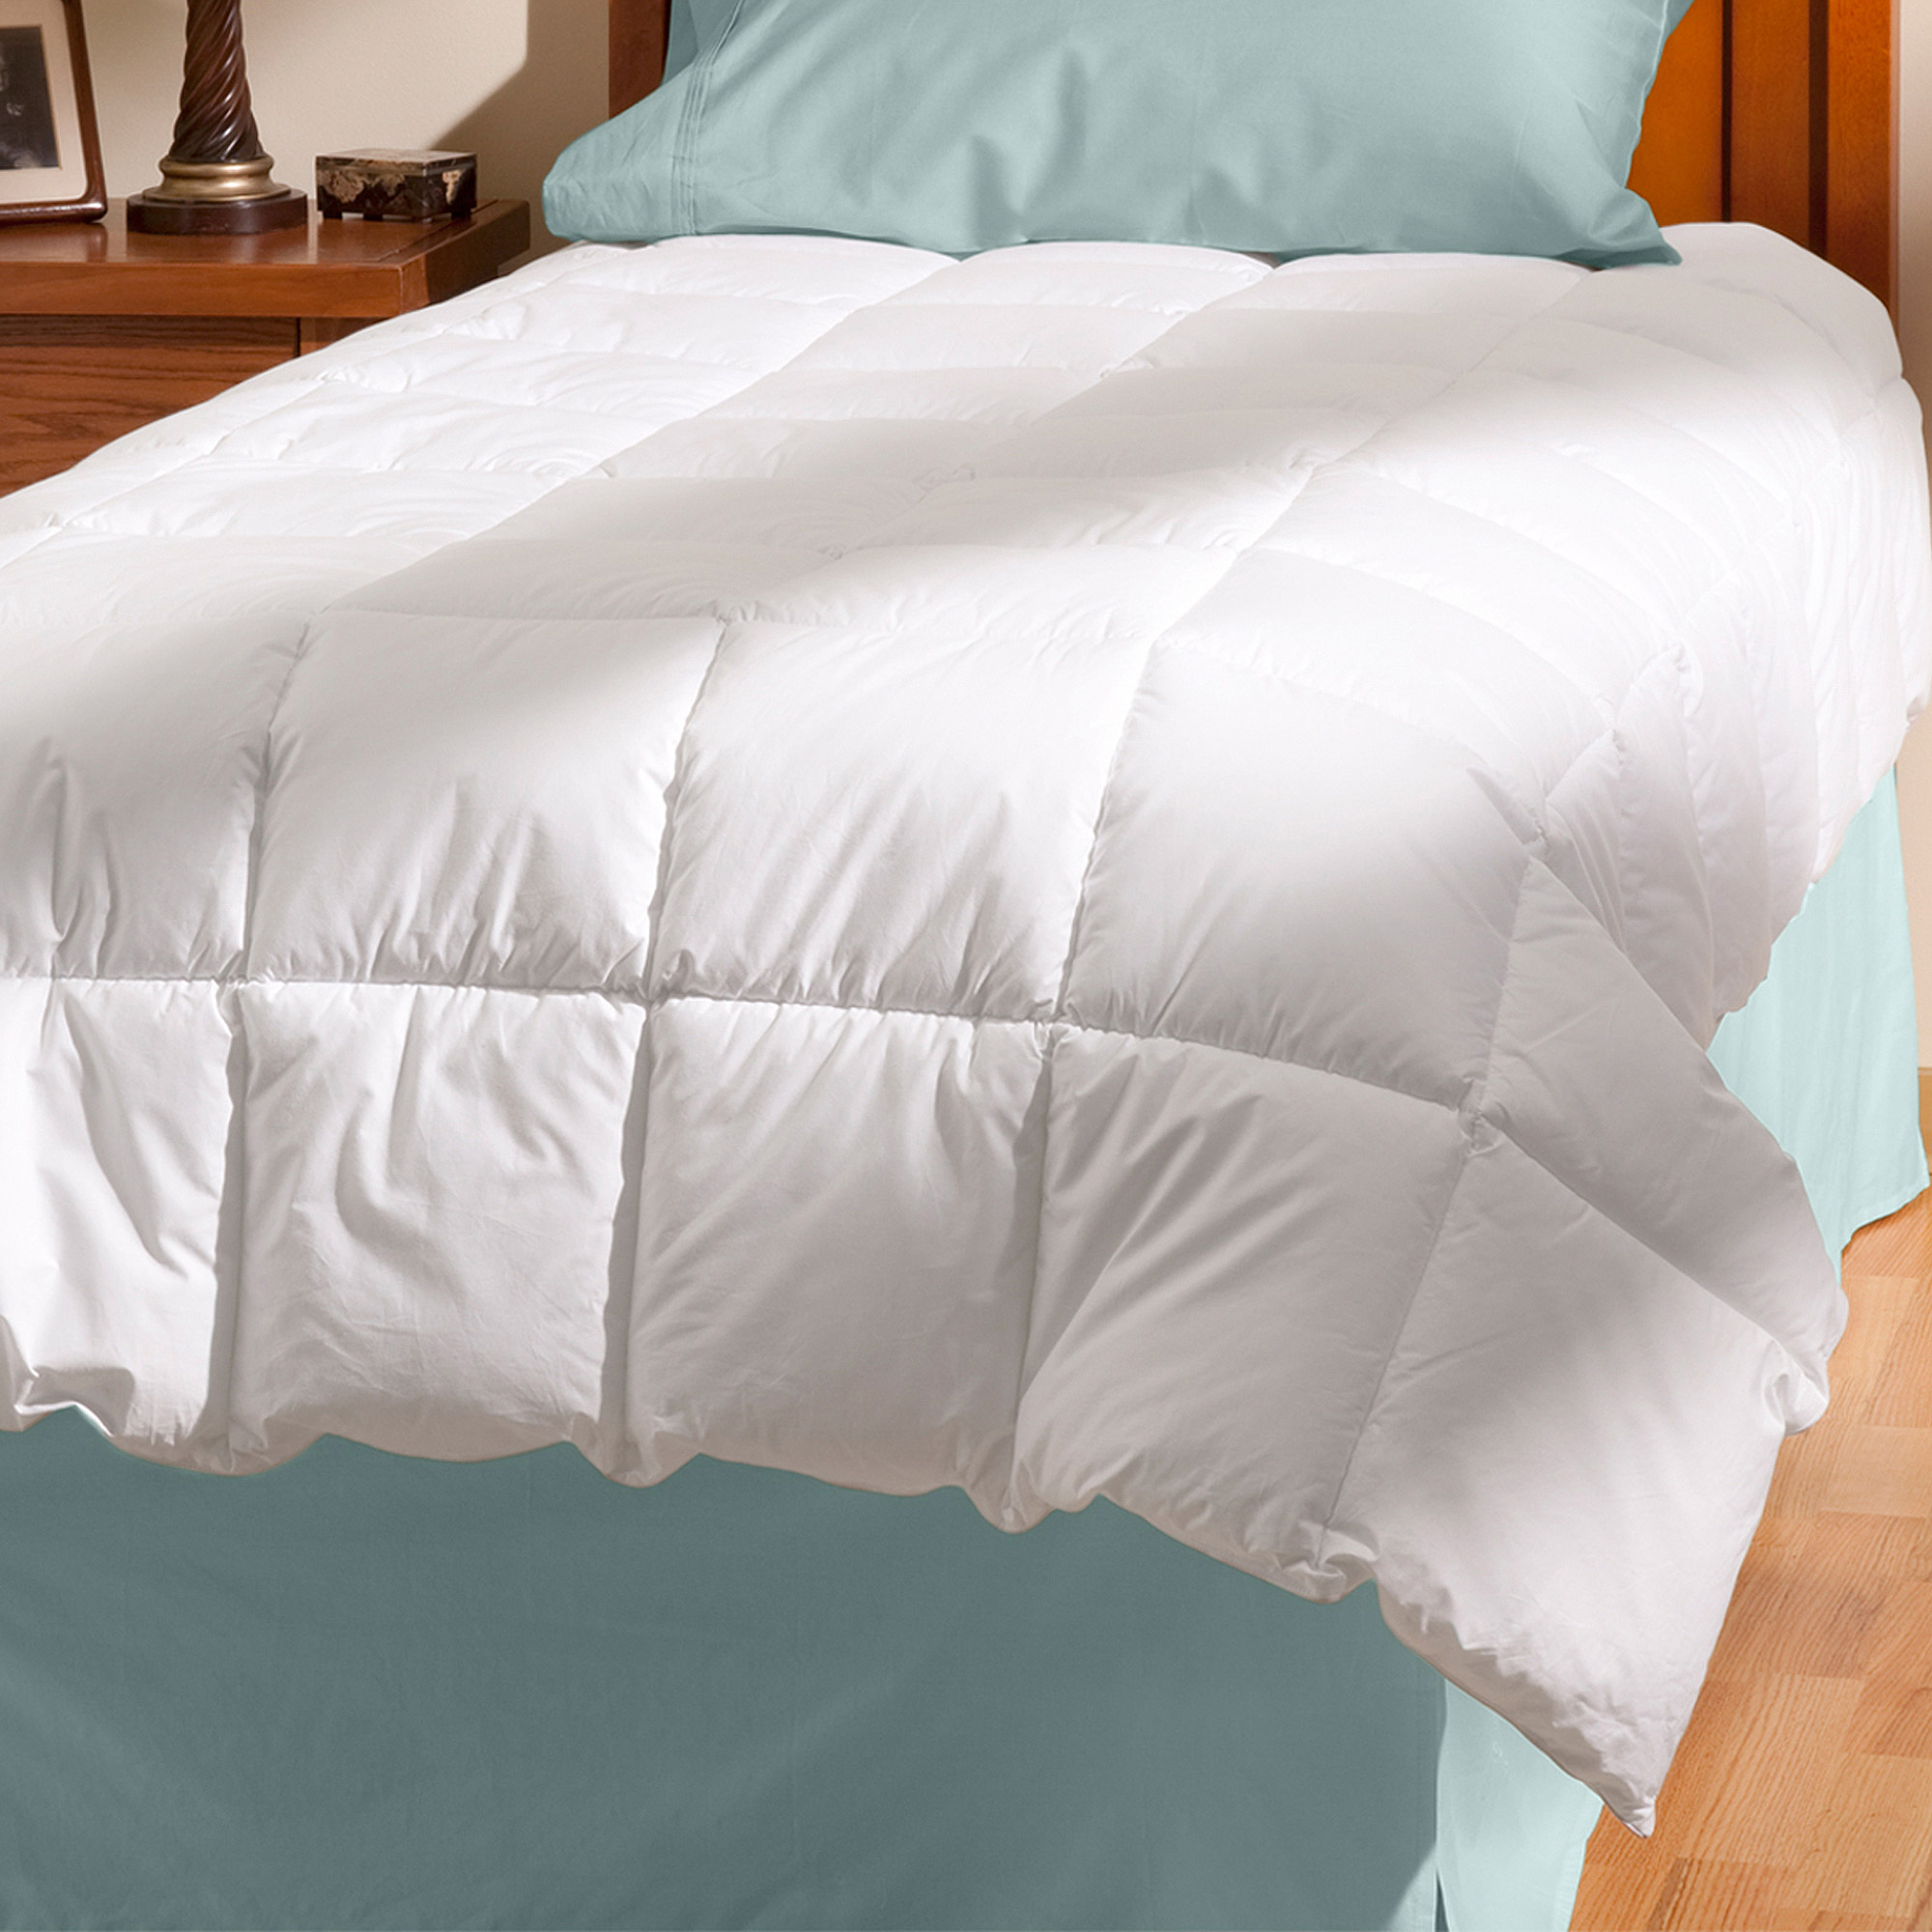 AllerEase Cotton Allergy Protection Comforter